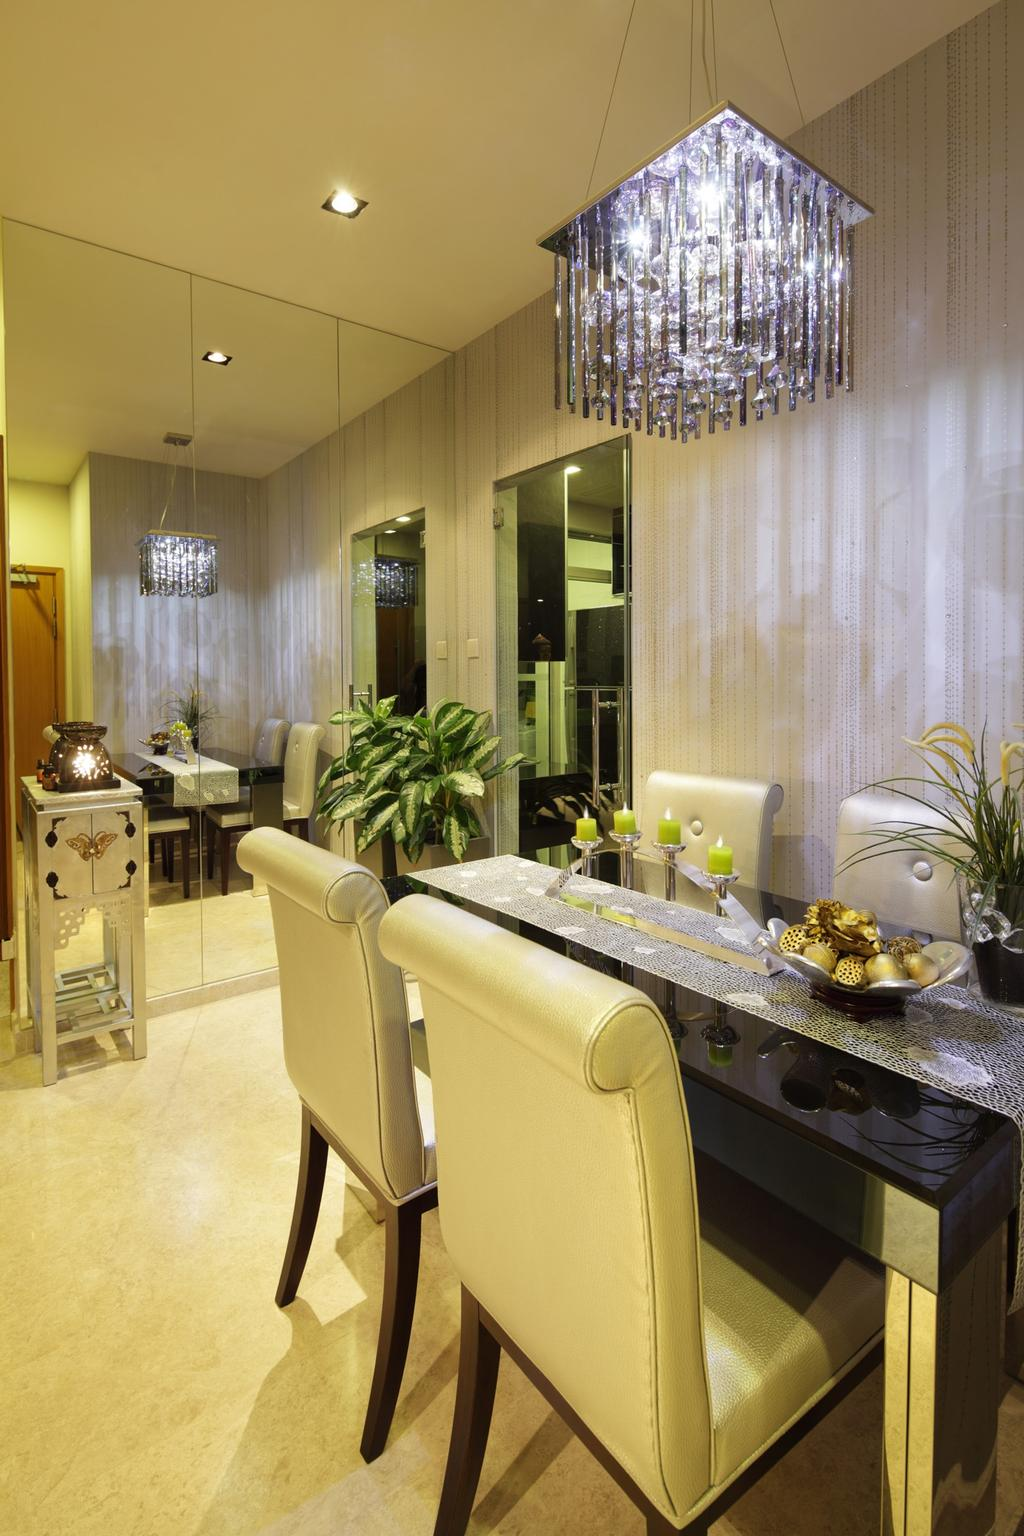 Transitional, Condo, Dining Room, 33 Mangis Road, Interior Designer, Space Define Interior, Mirror, Full Length Mirror, Dining Table, Table, Chair, Marble Flooring, Side Table, Lamp, Chandelier, Stripe Wall, Stripes, Wallpaper, Flora, Jar, Plant, Potted Plant, Pottery, Vase, Sink, Indoors, Interior Design, Room